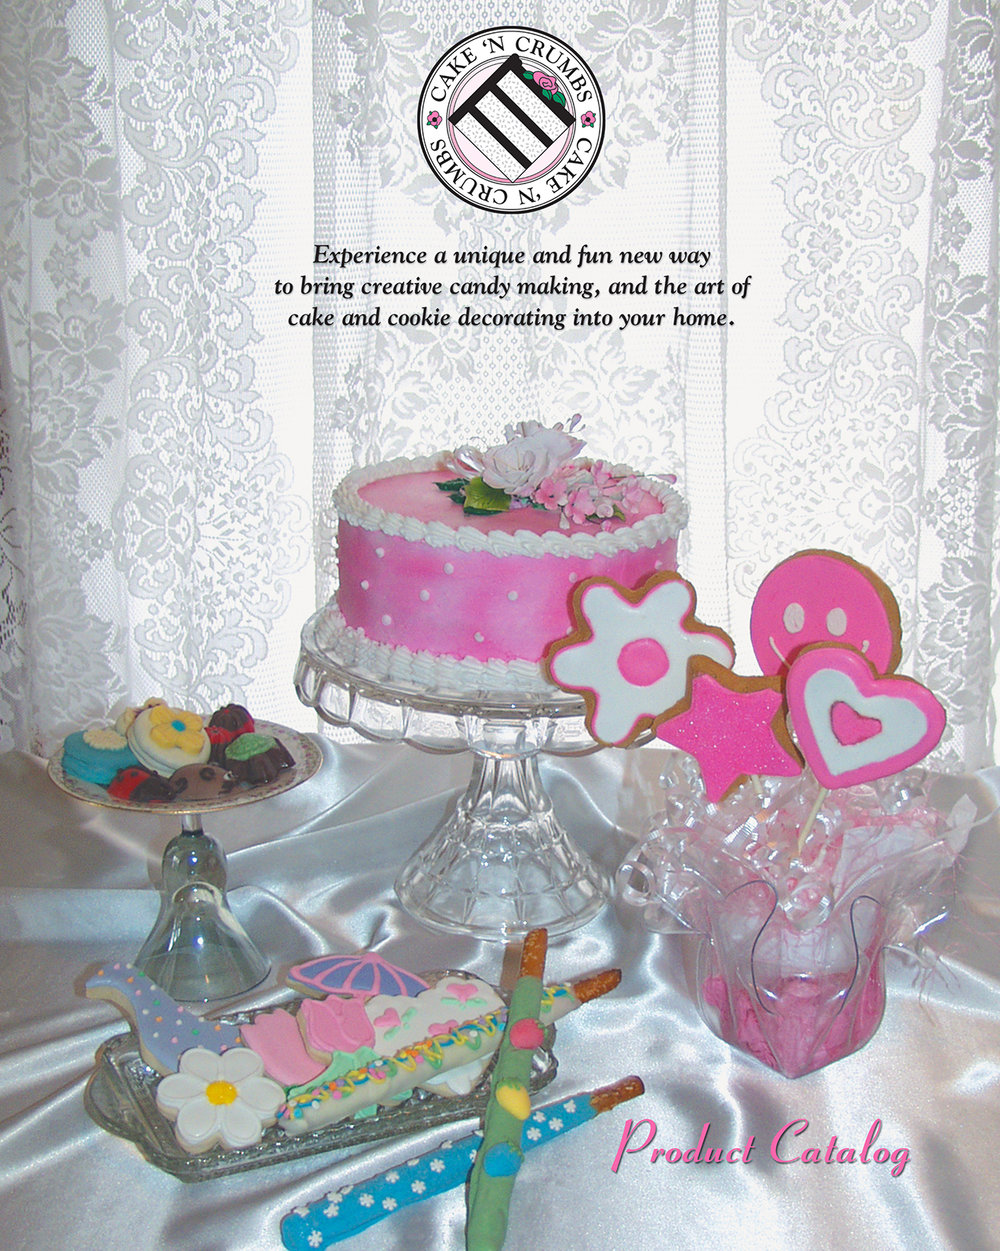 ART DIRECTION + FOOD STYLING   for Cake 'n Crumbs 56-page product catalog.